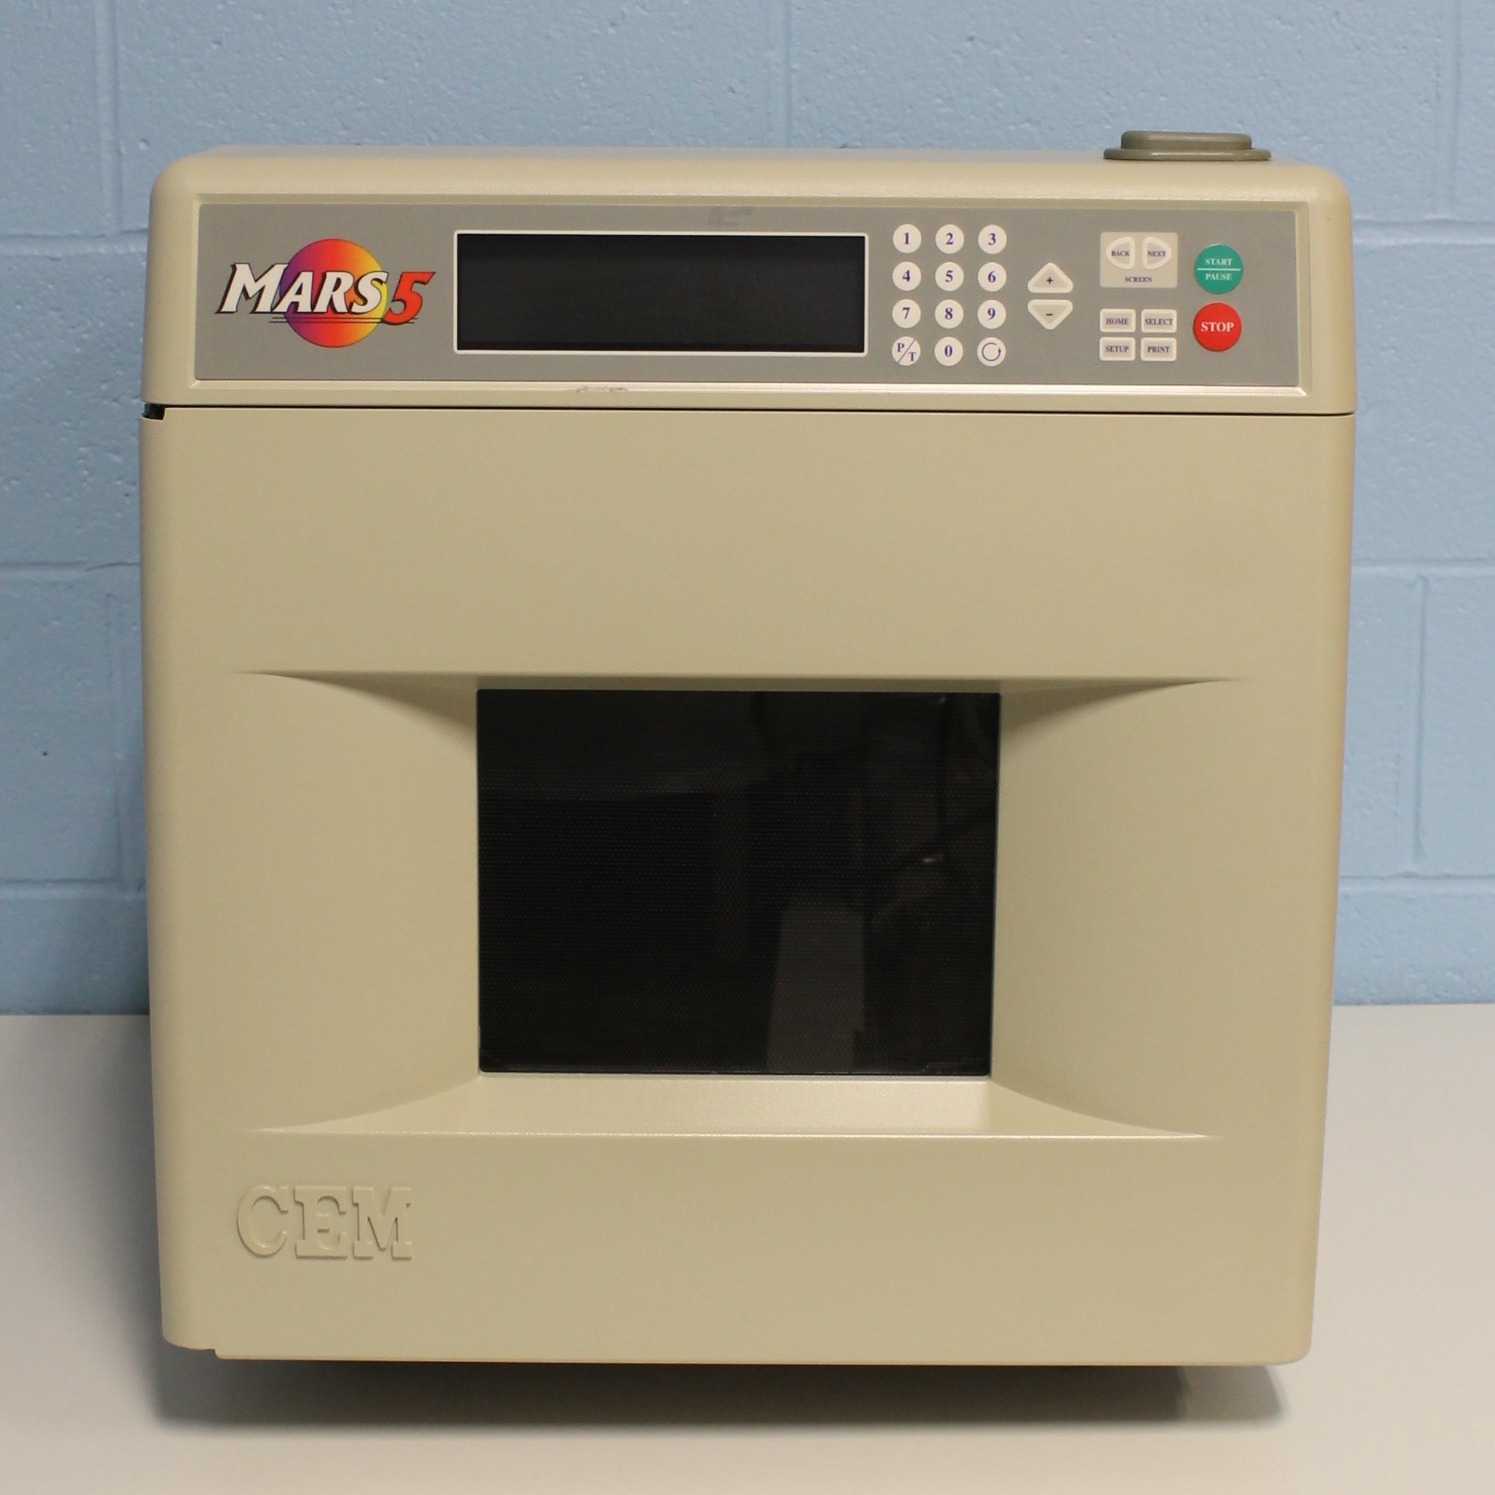 CEM MARS 5 Microwave Accelerated Reaction System Image